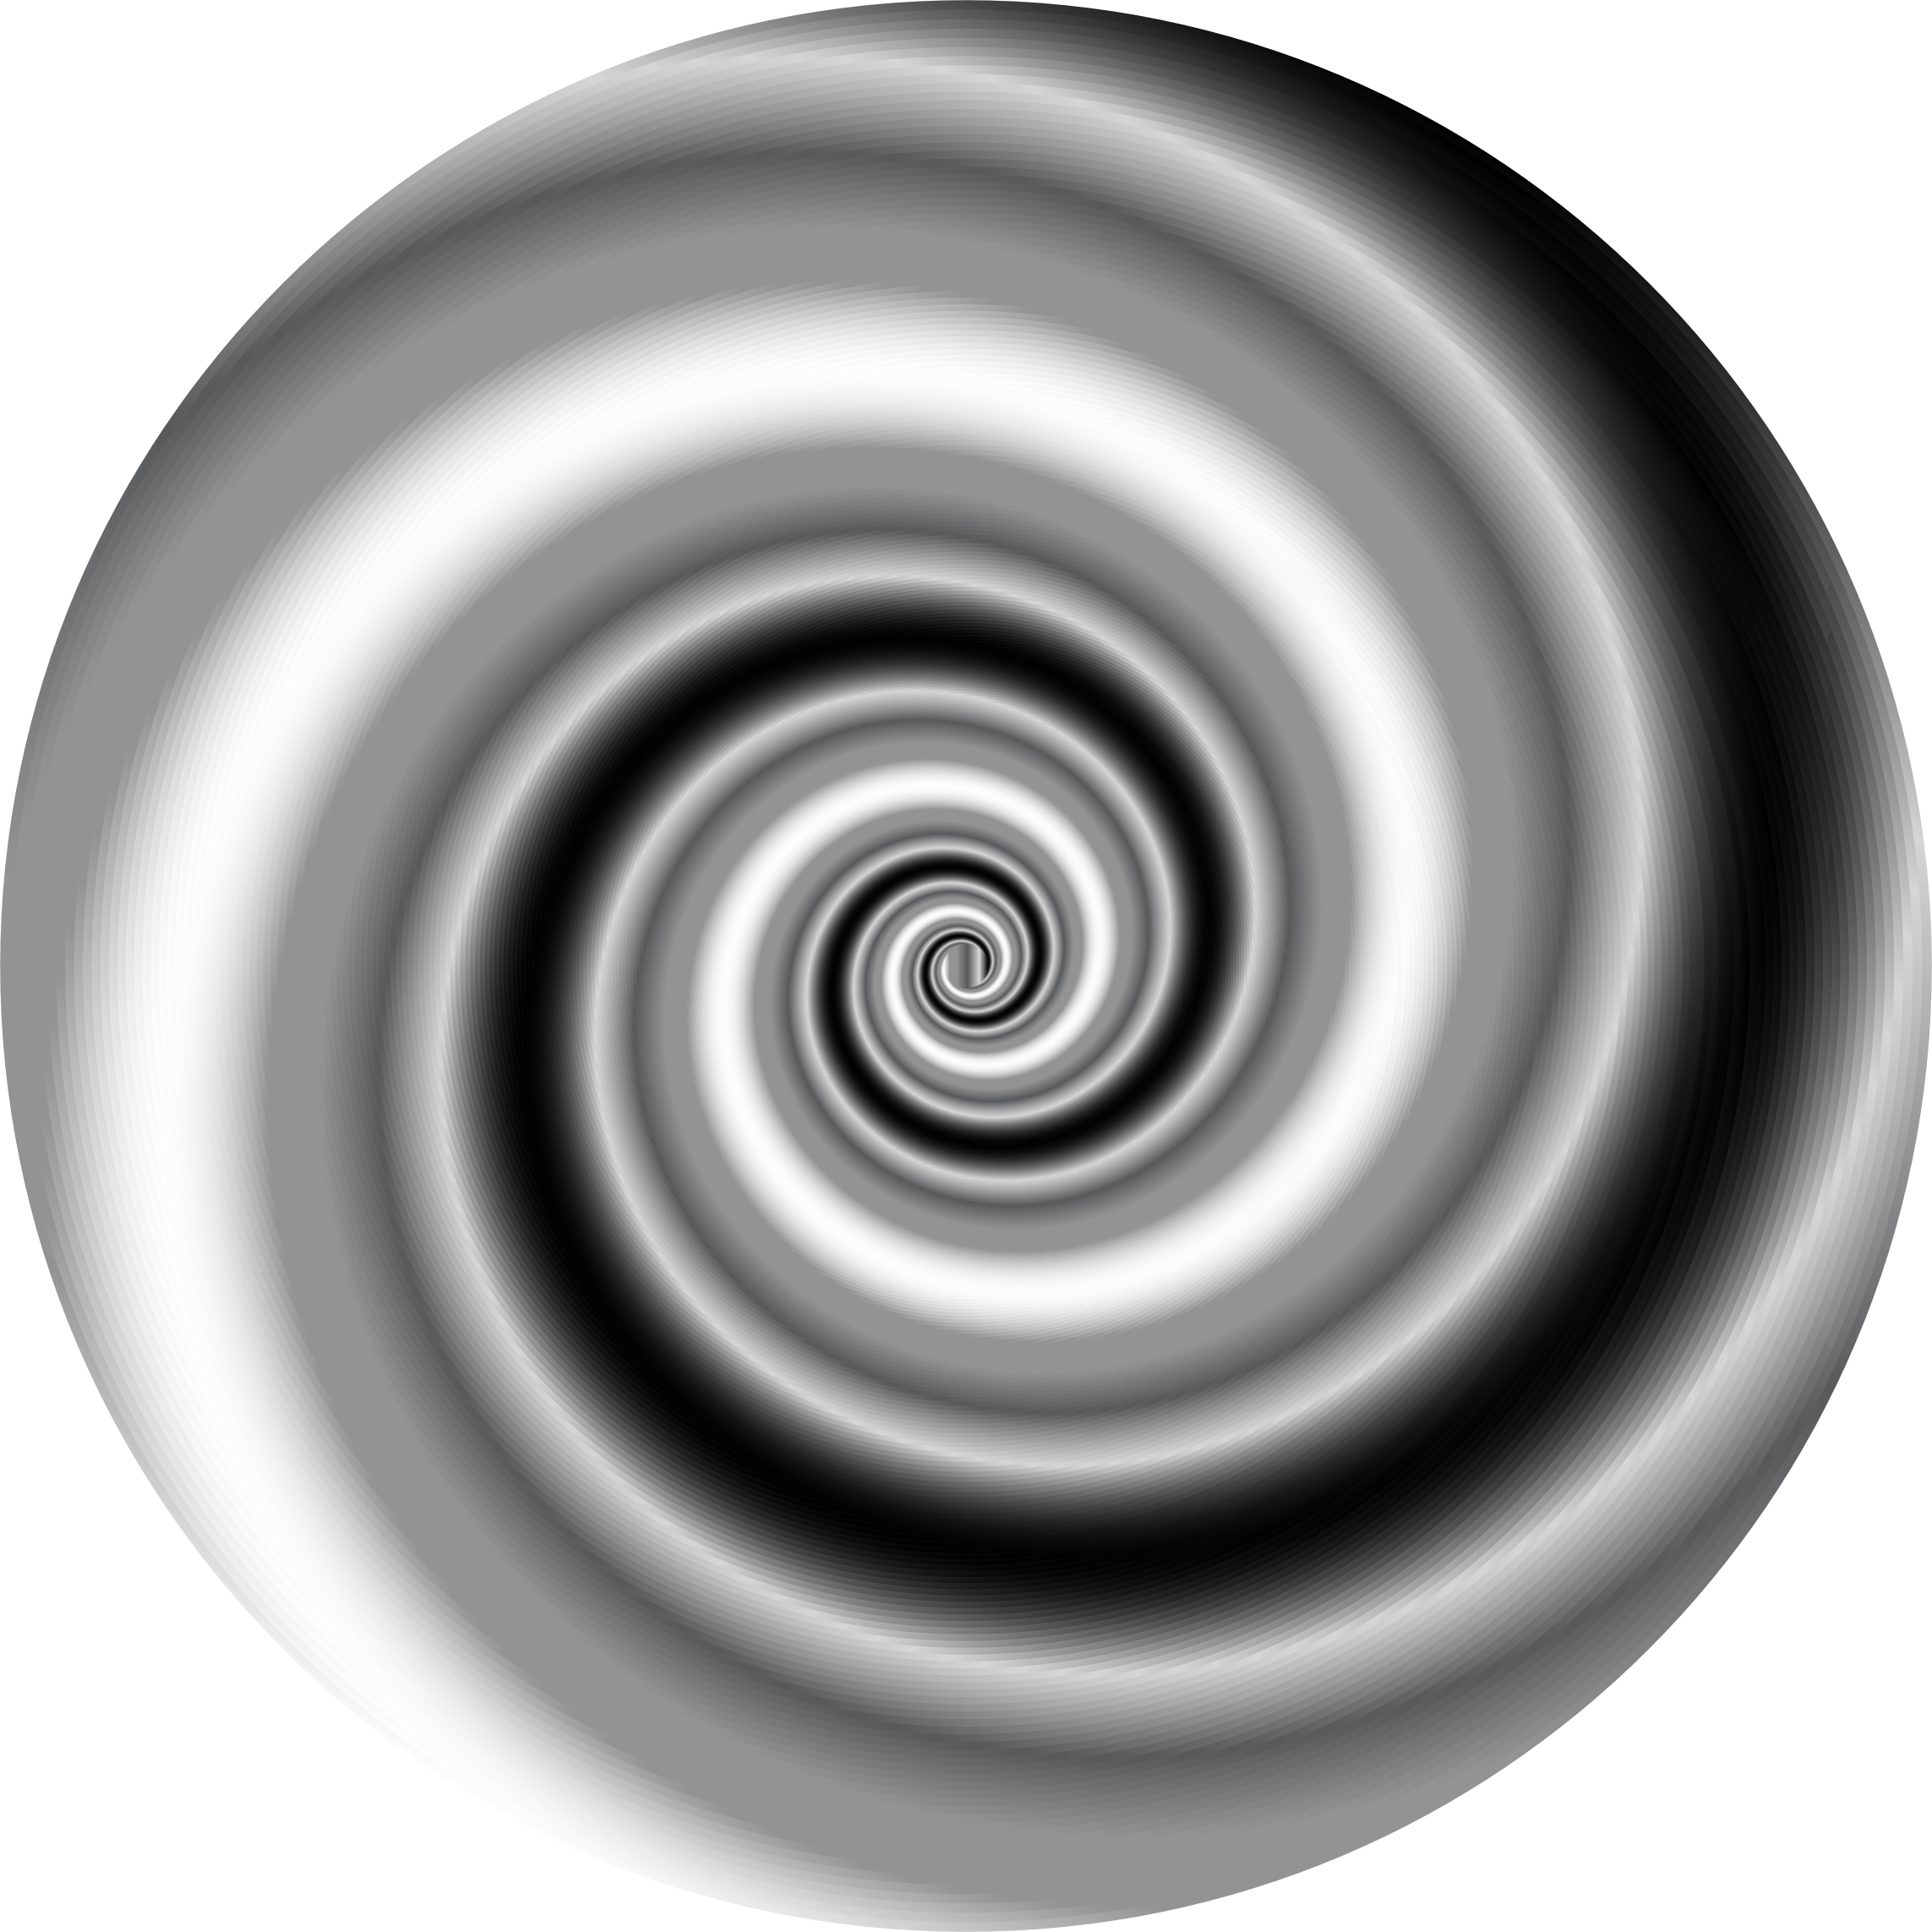 Vortex vector black and white. Colorful swirling icons png